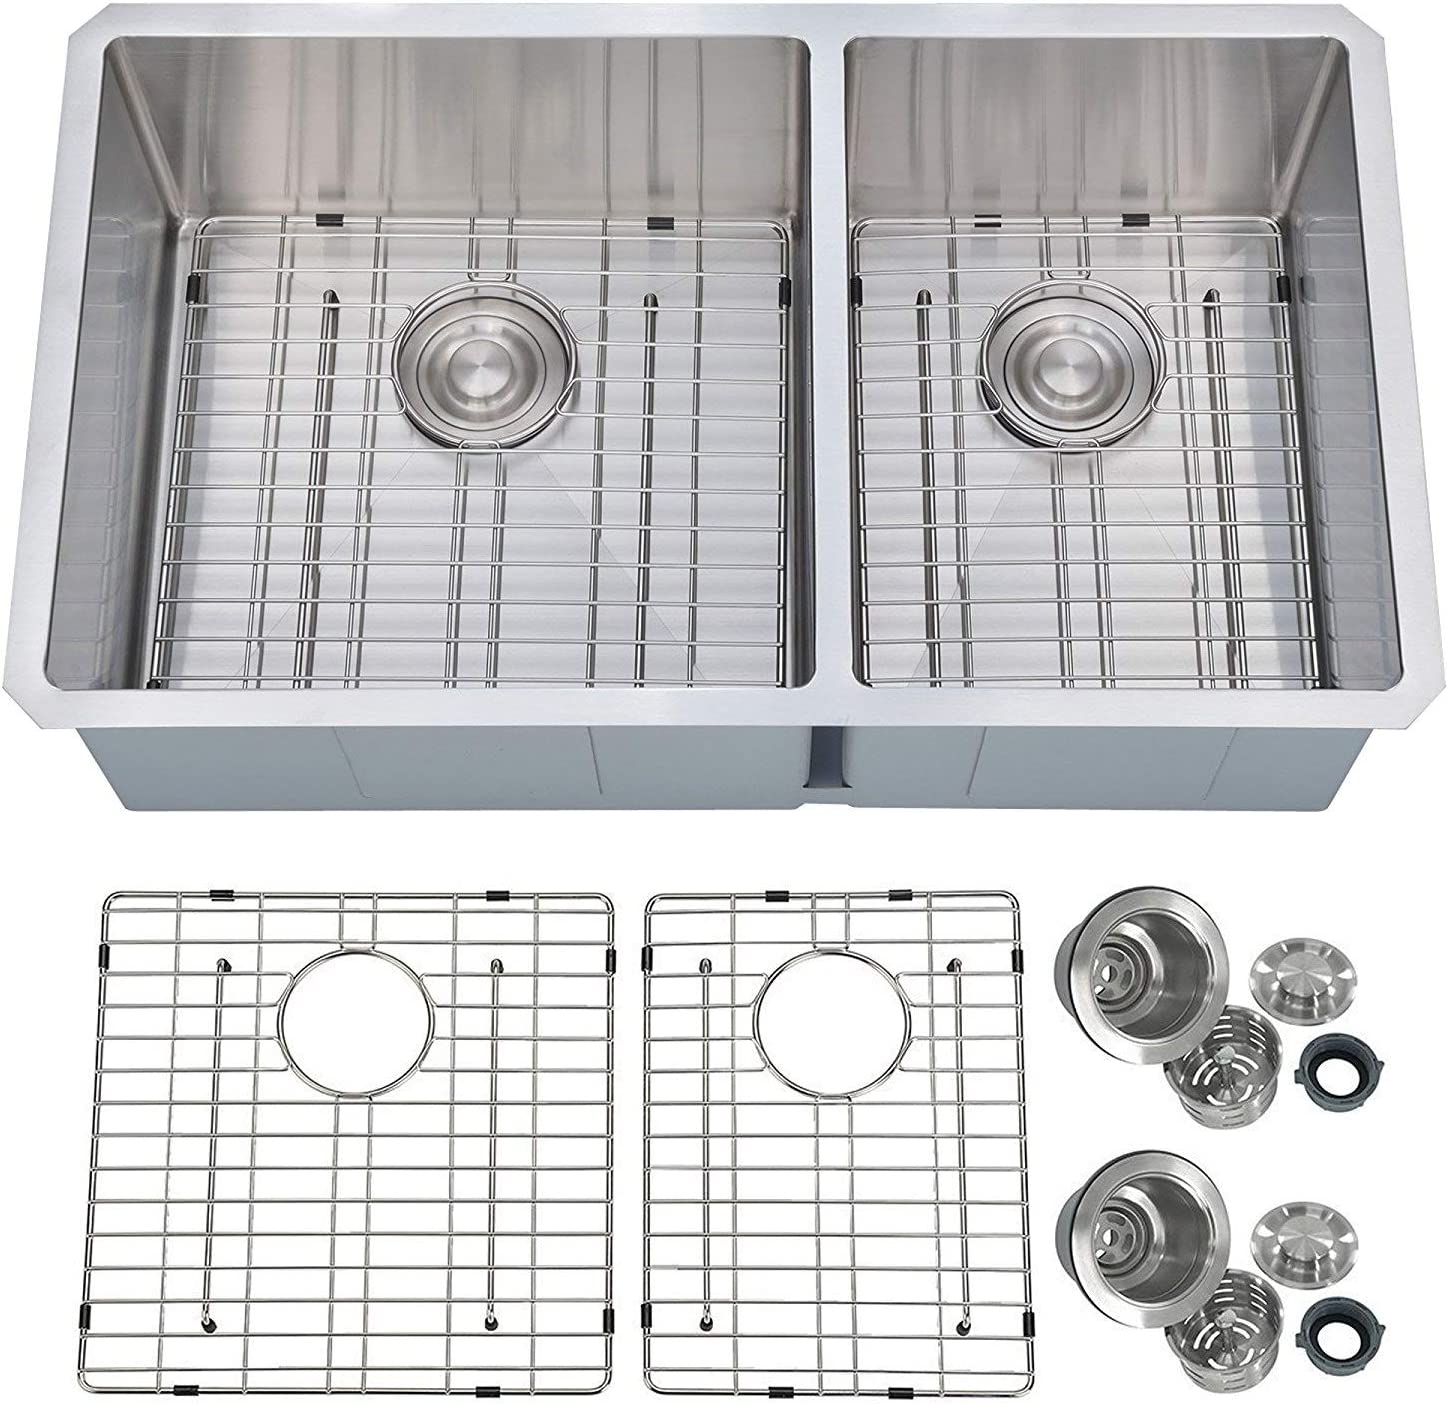 PRIMART PHU33DO Handcrafted 33 X 19 Inch 60 40 Double Bowls 16 Gauge Undermount Stainless Steel Kitchen Sink w Bottom Grid Sink Strainer